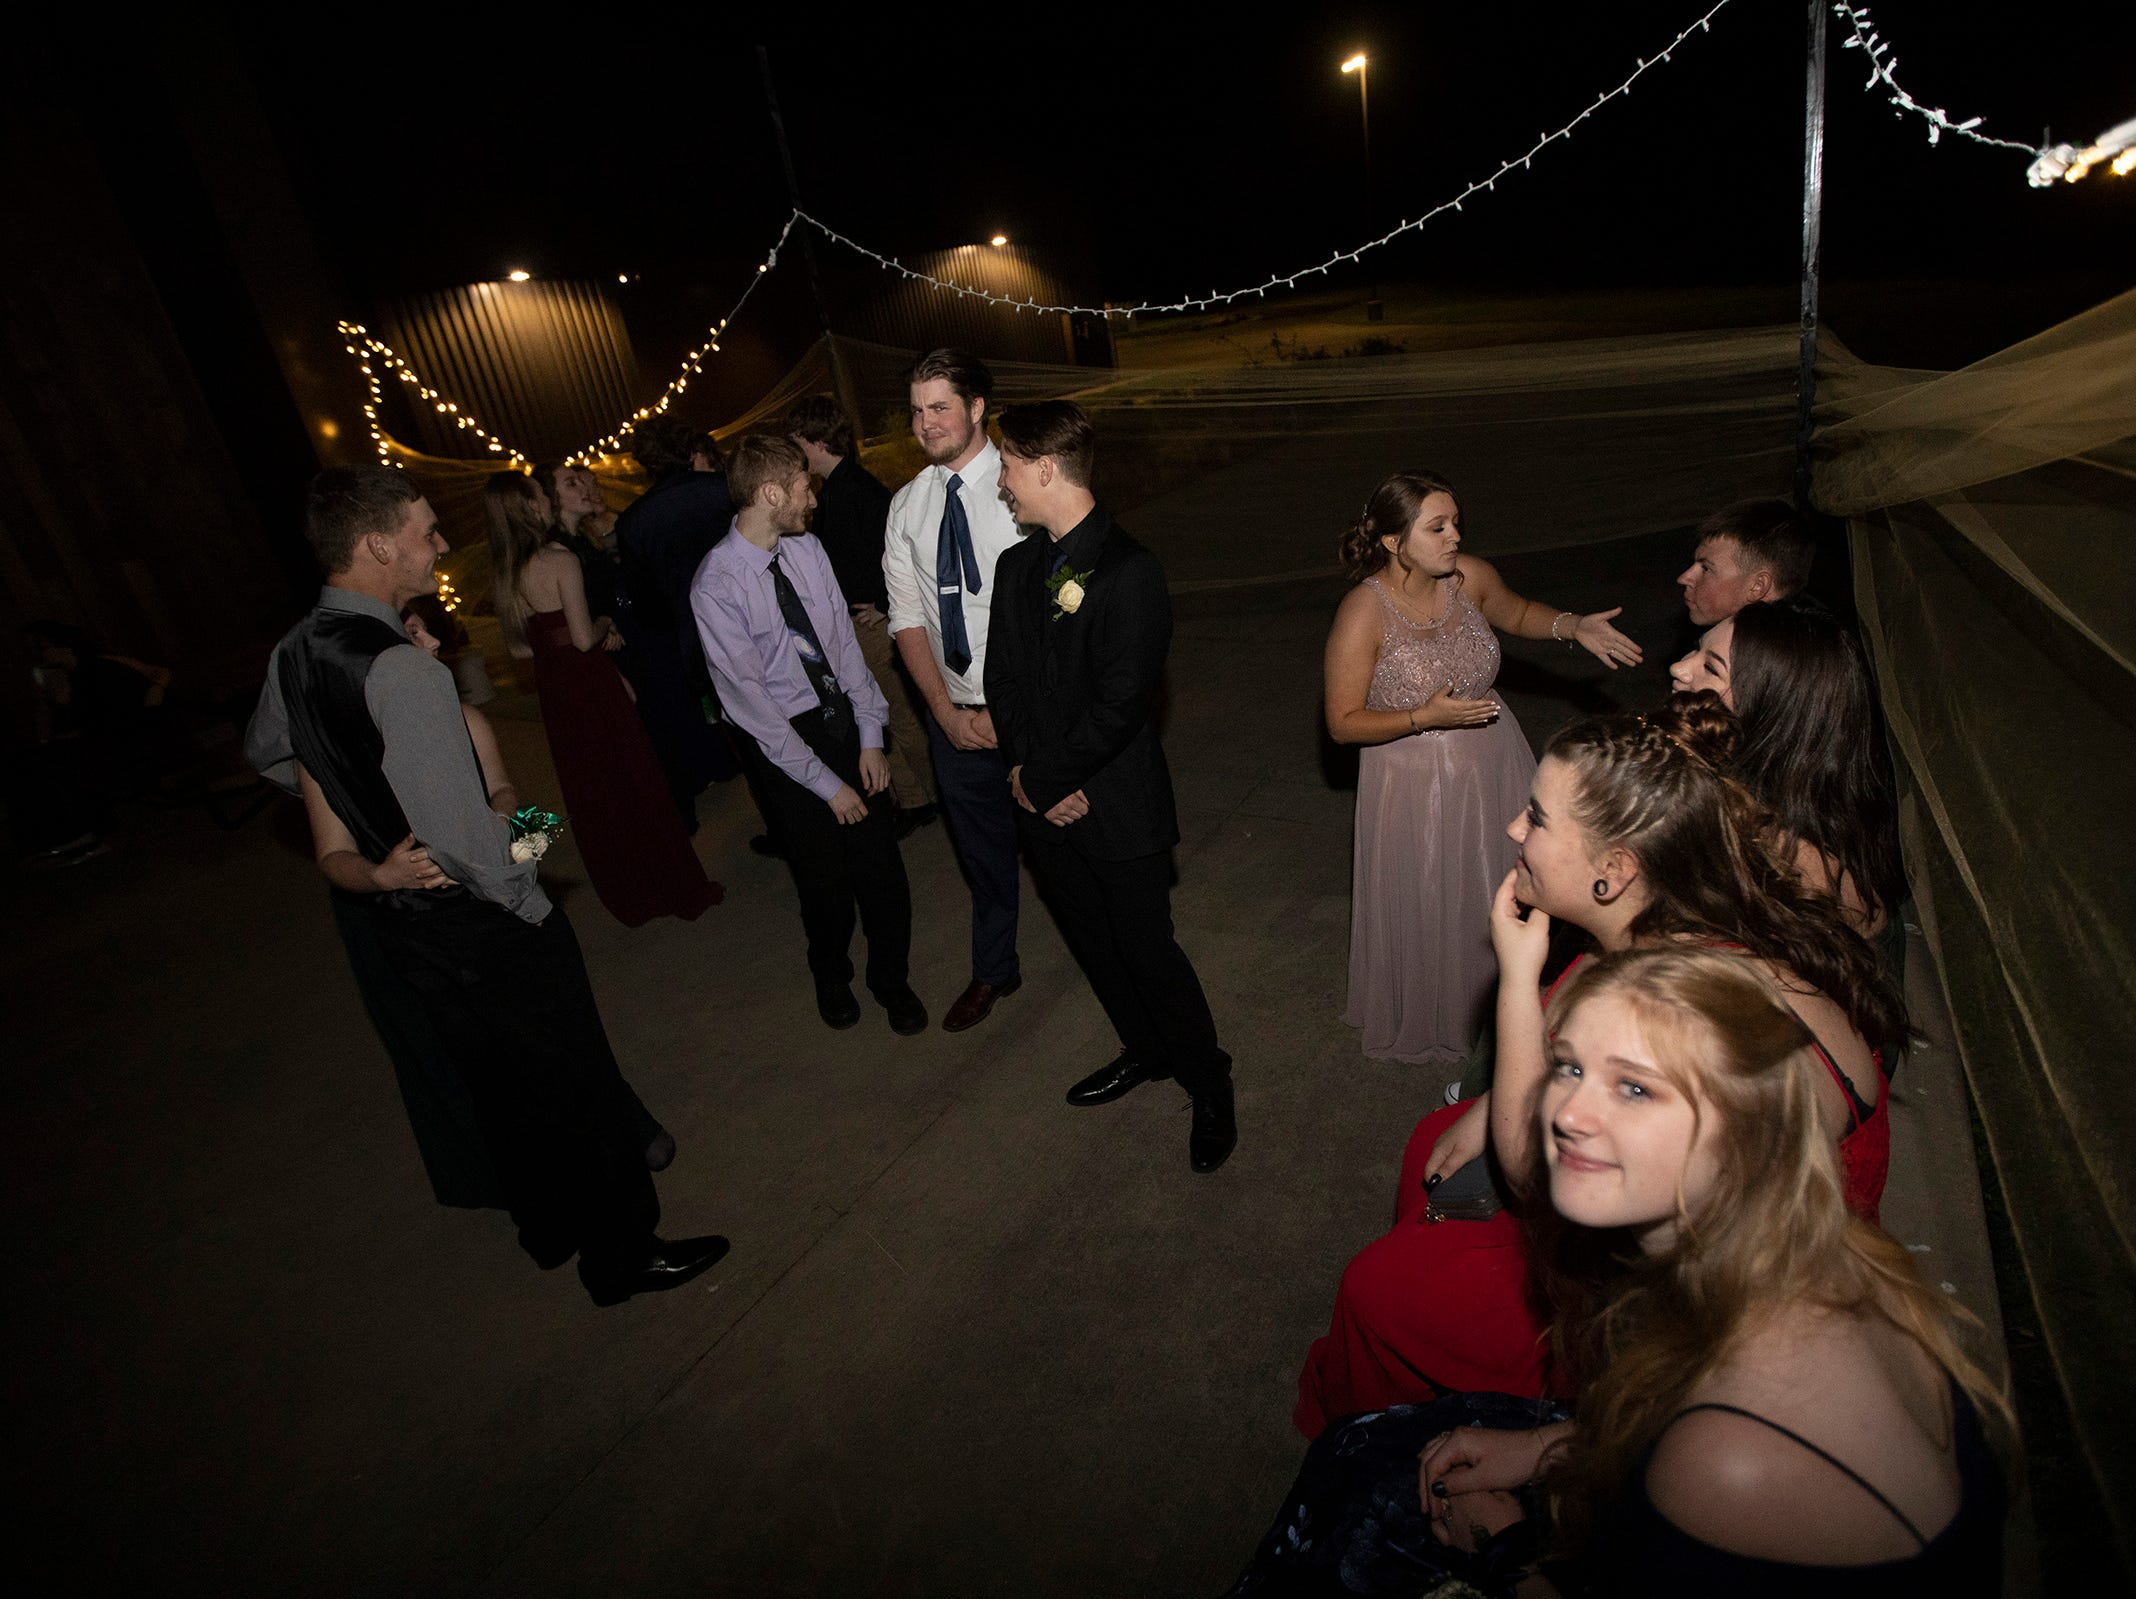 Dallas High School held their prom at the Dallas Armory on Saturday, May 12.